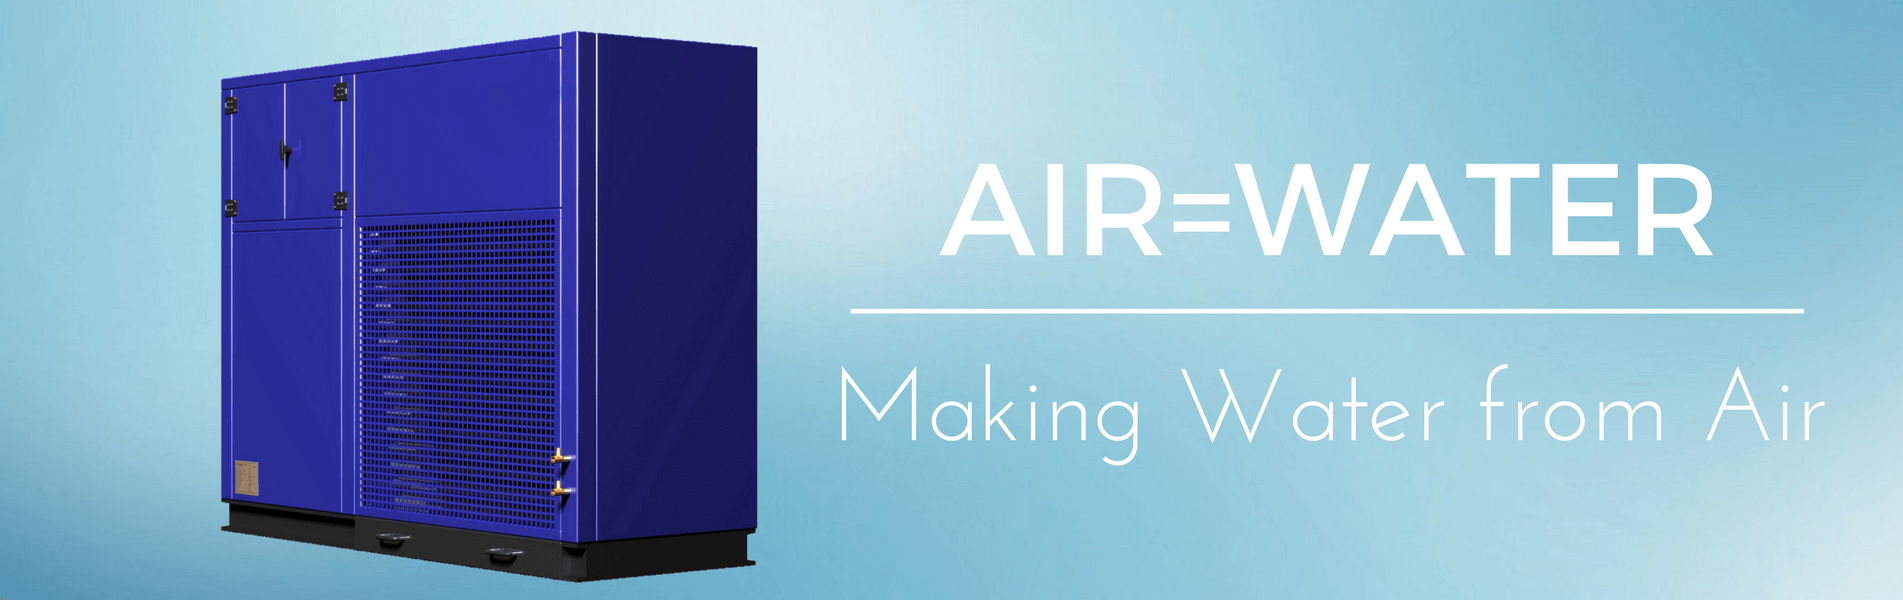 Commercial air water maker, AWG